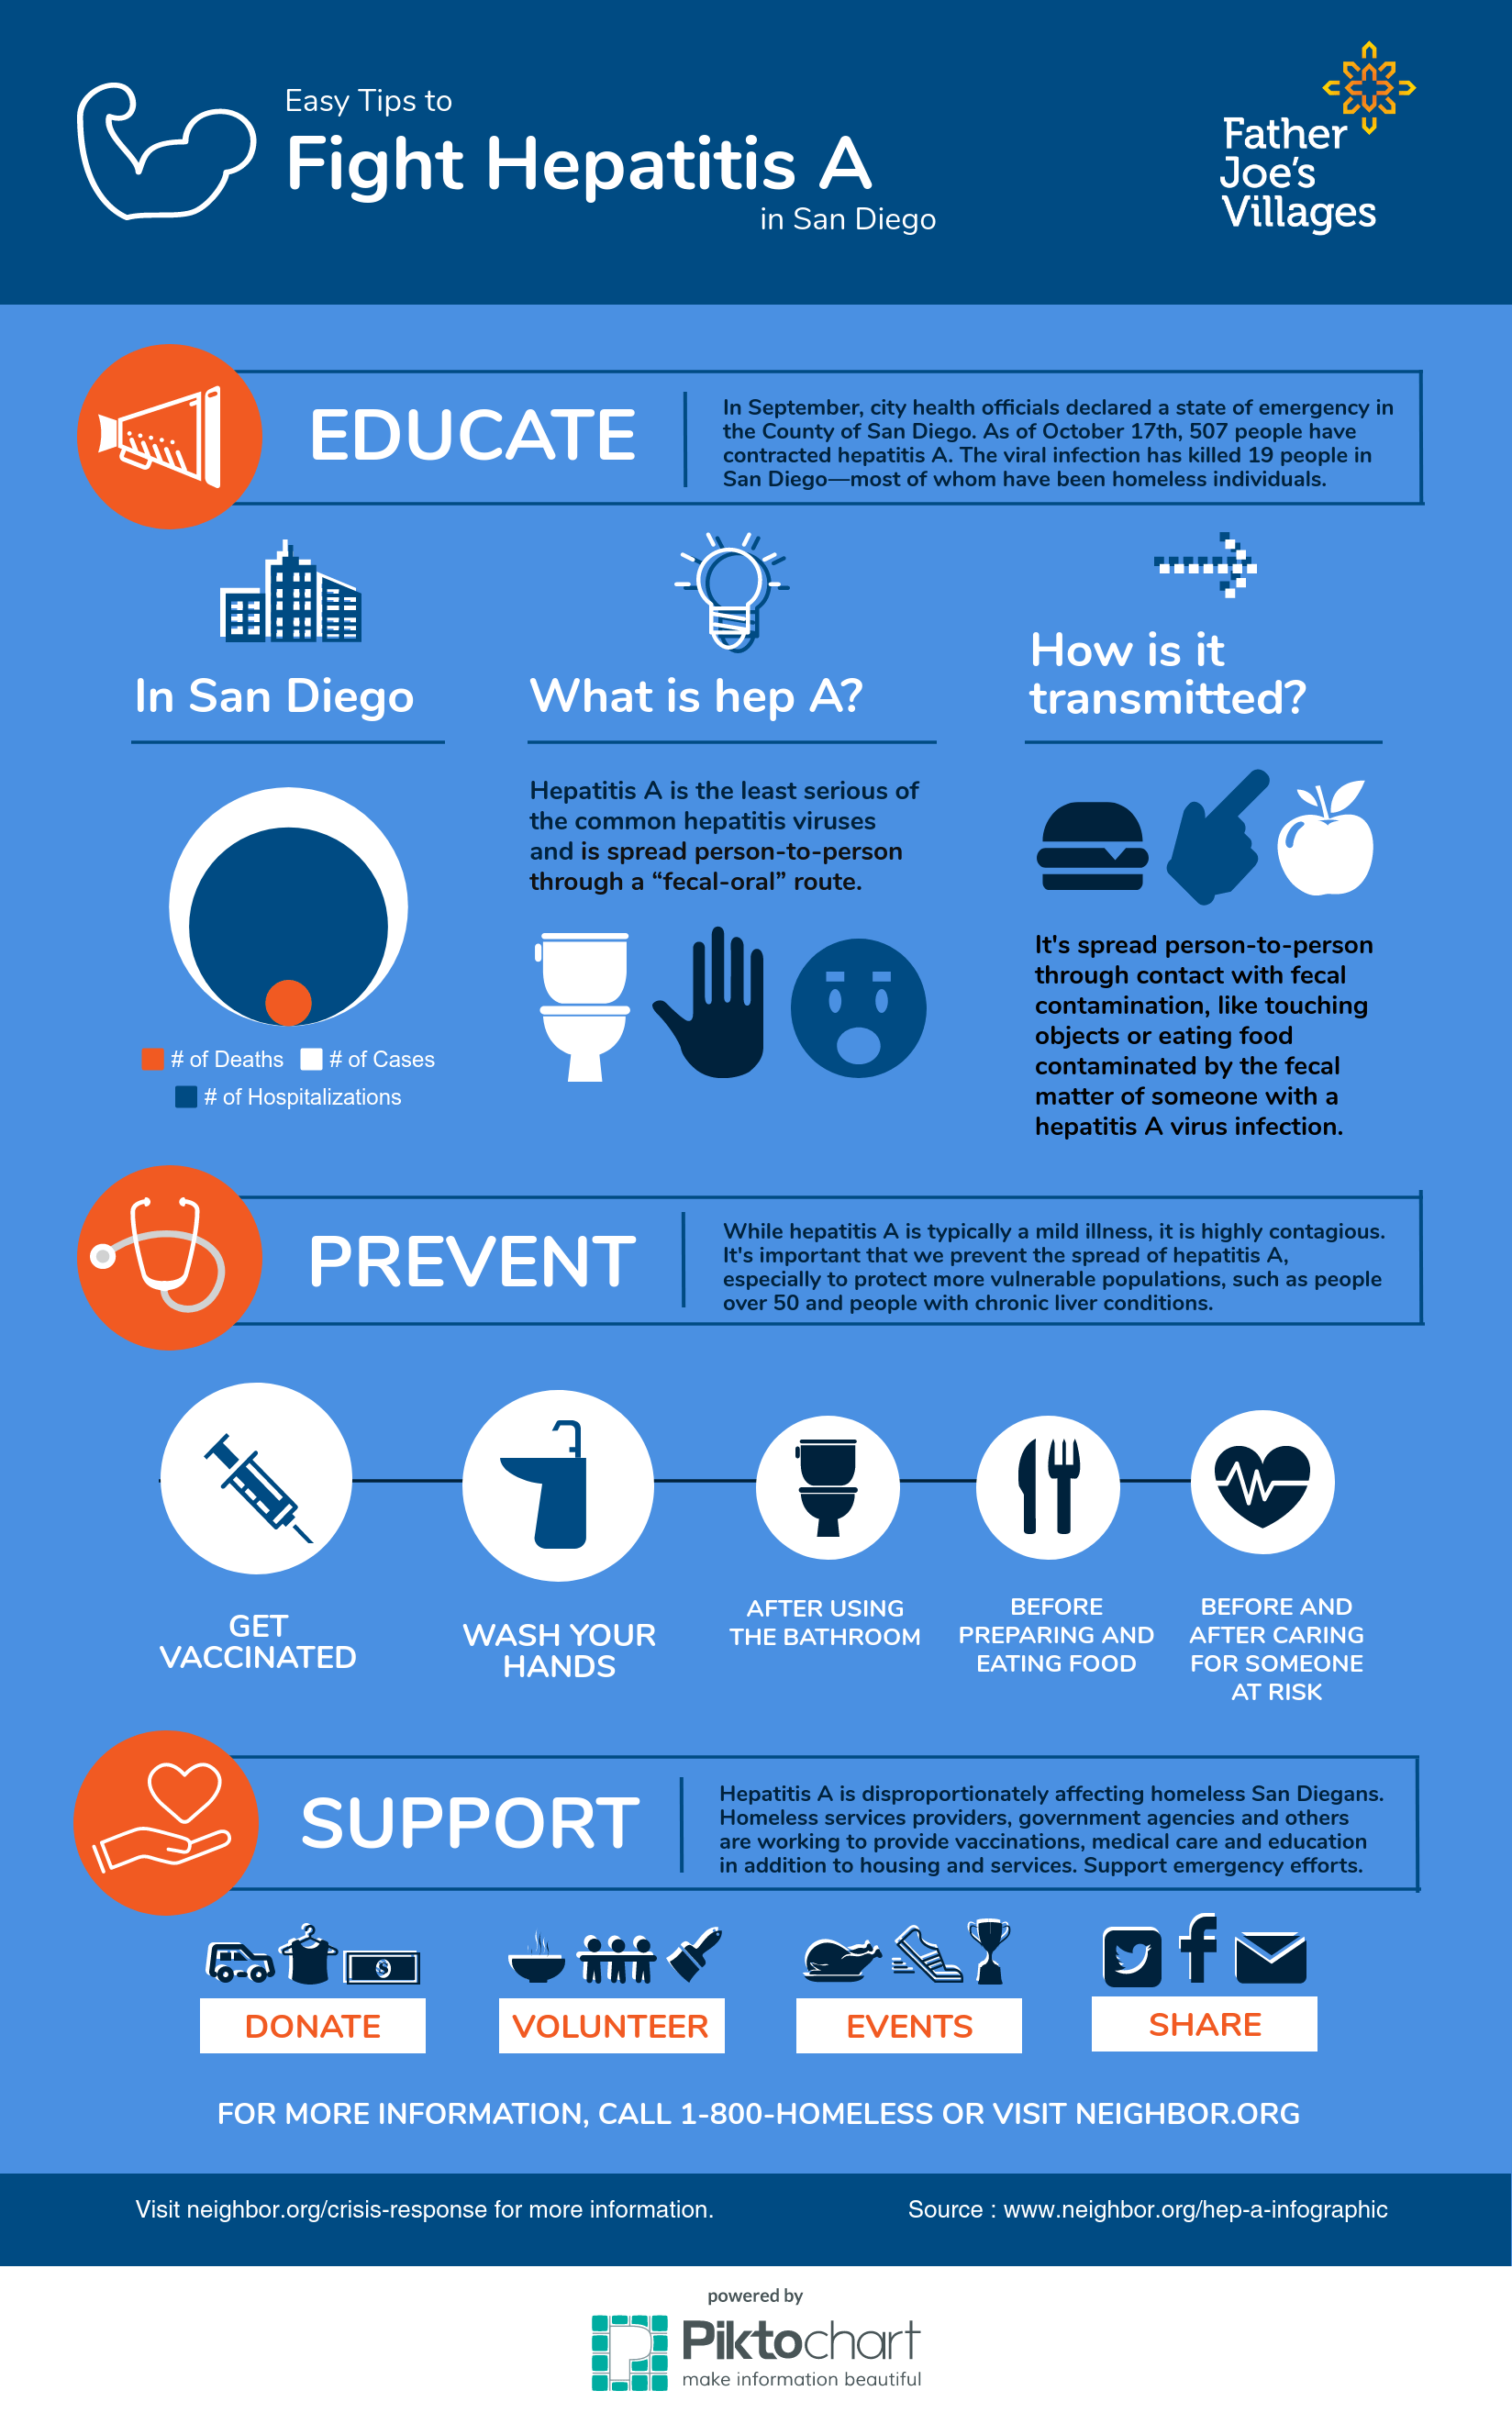 Easy Tips to Fight Hapatitis A infographic